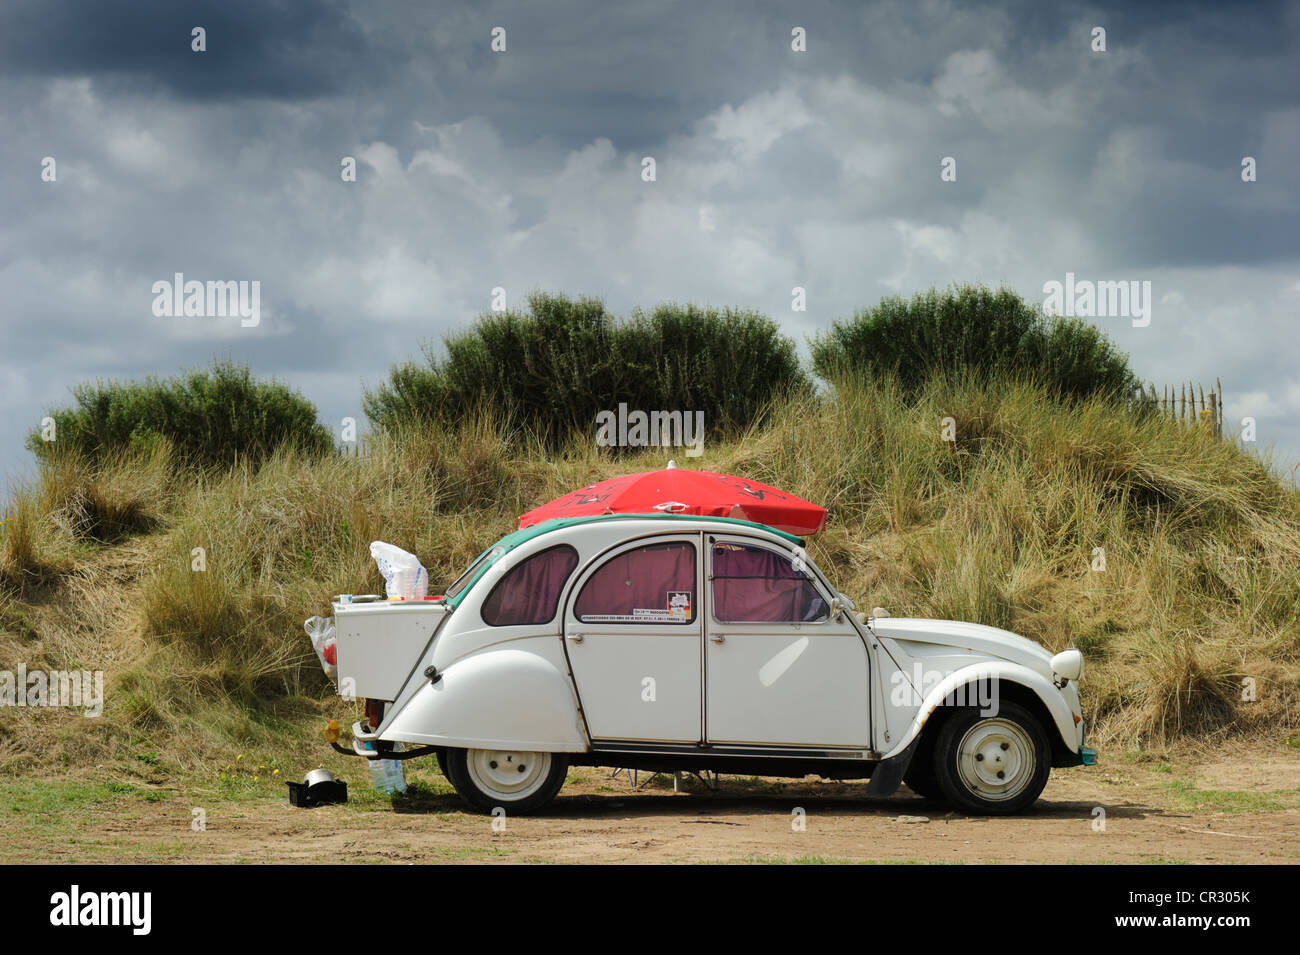 camping  u0026quot duck u0026quot   citro u00ebn 2cv  deux chevaux  used as a